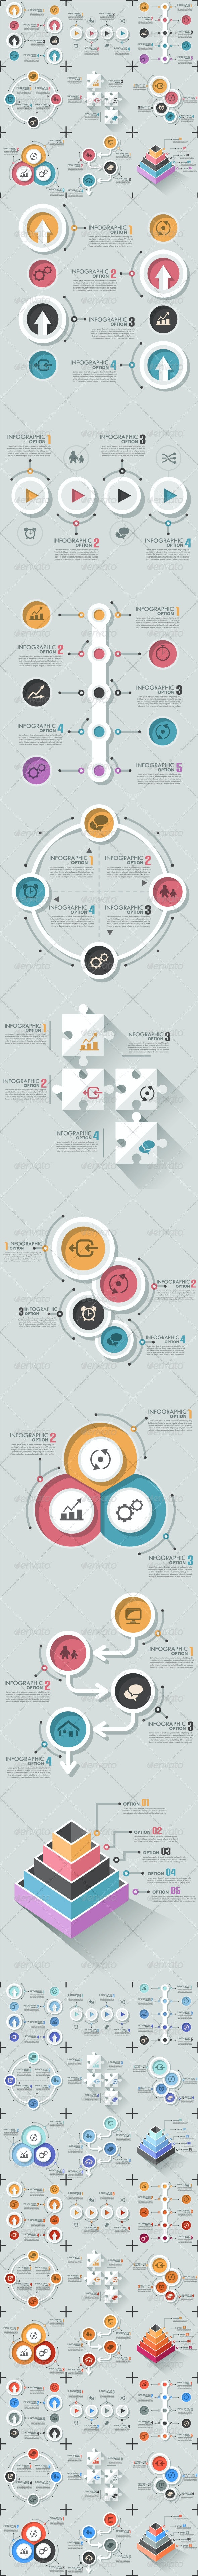 Set Of 9 Flat Infographic Options Templates - Infographics